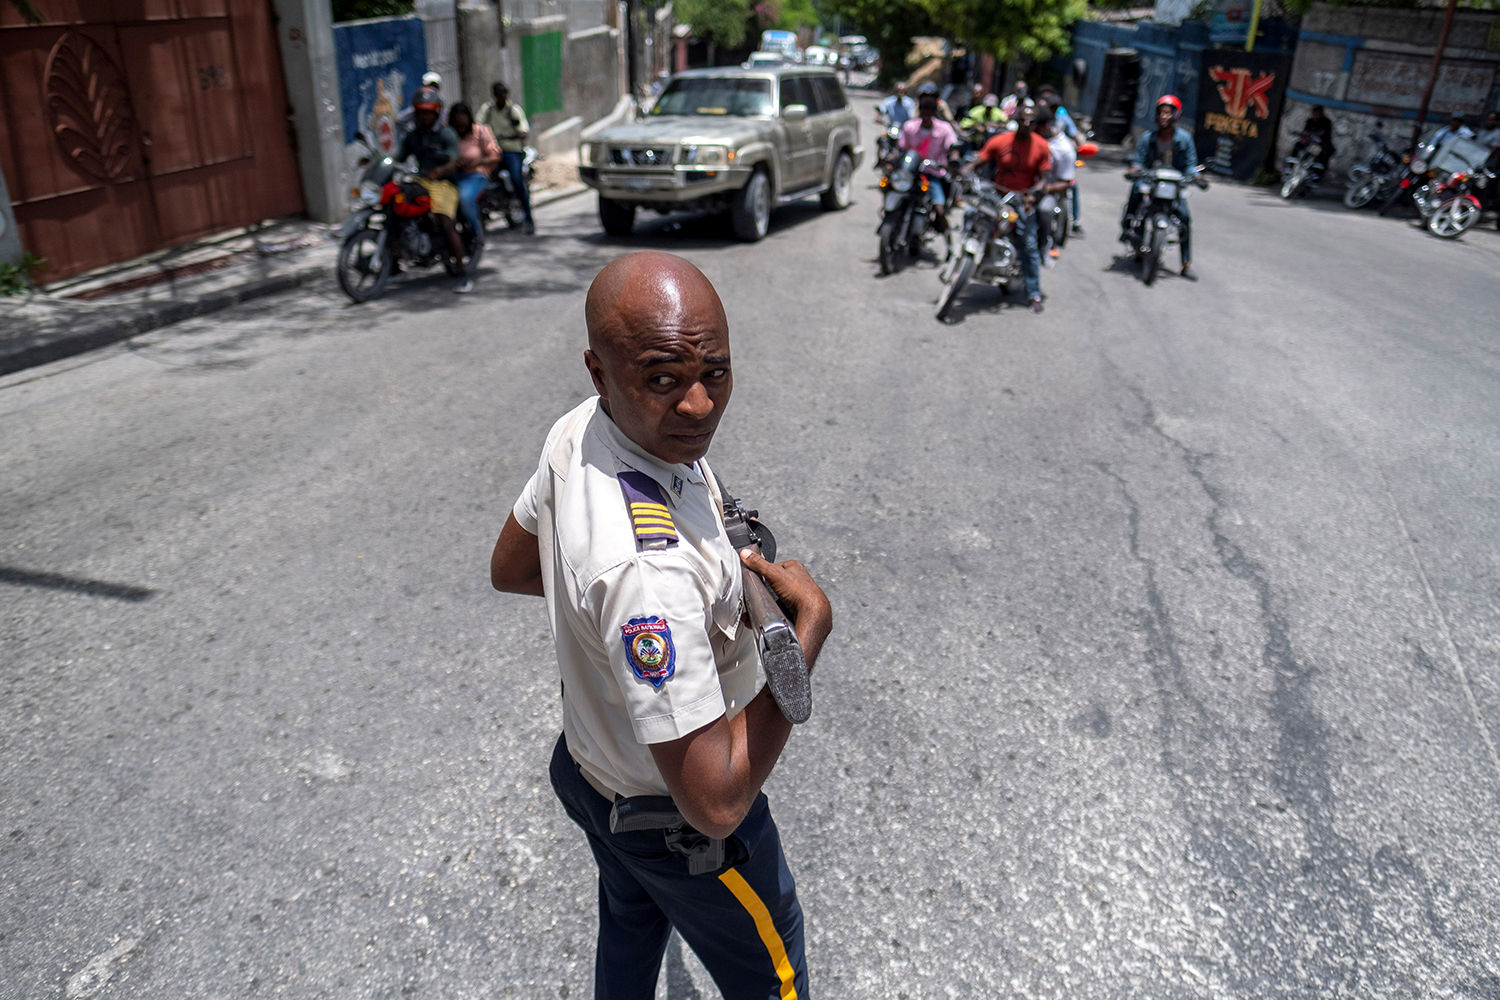 Police officer in Haiti following presidential assassination